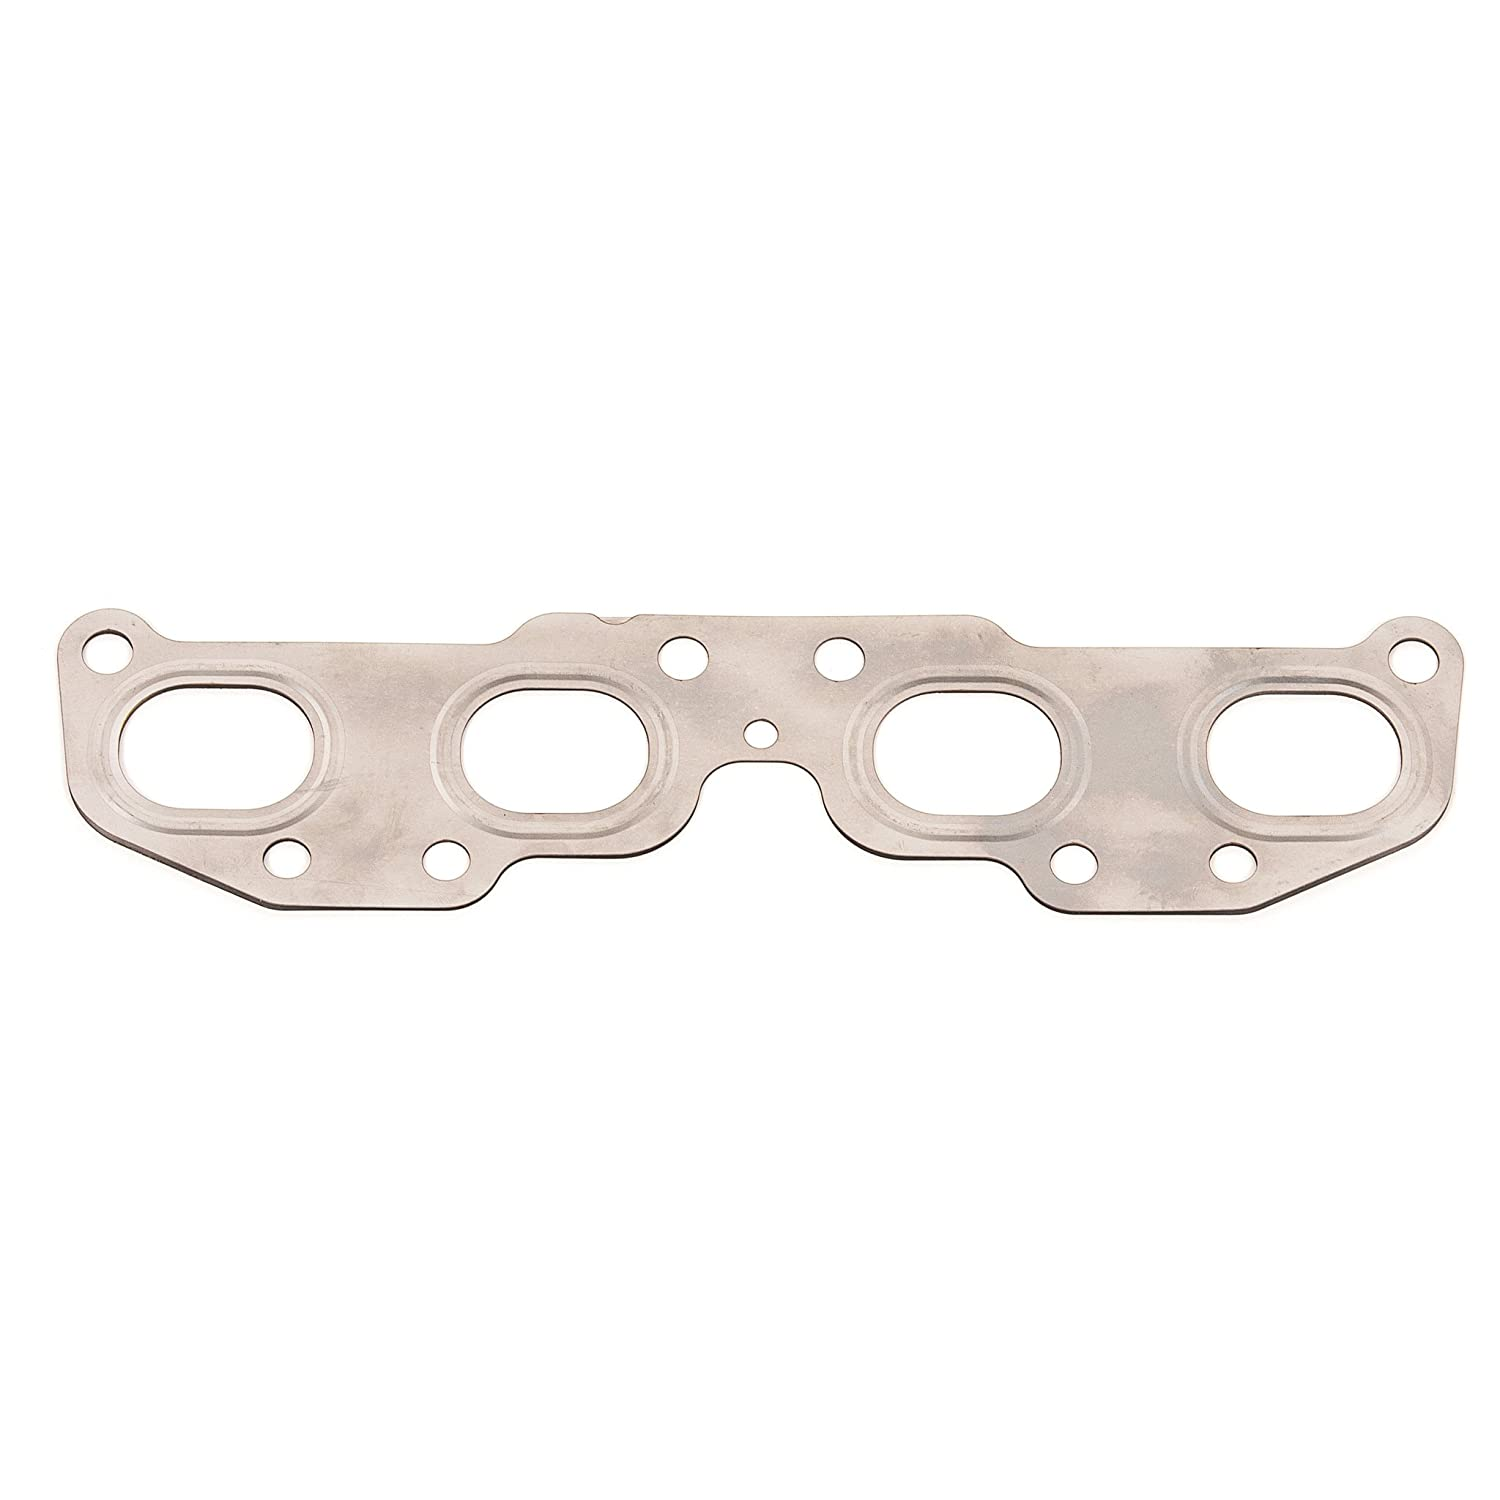 Evergreen EMS3040 07-09 Nissan Altima Rouge Sentra 2.5L DOHC QR25DE Exhaust Manifold Gasket Evergreen Parts And Components